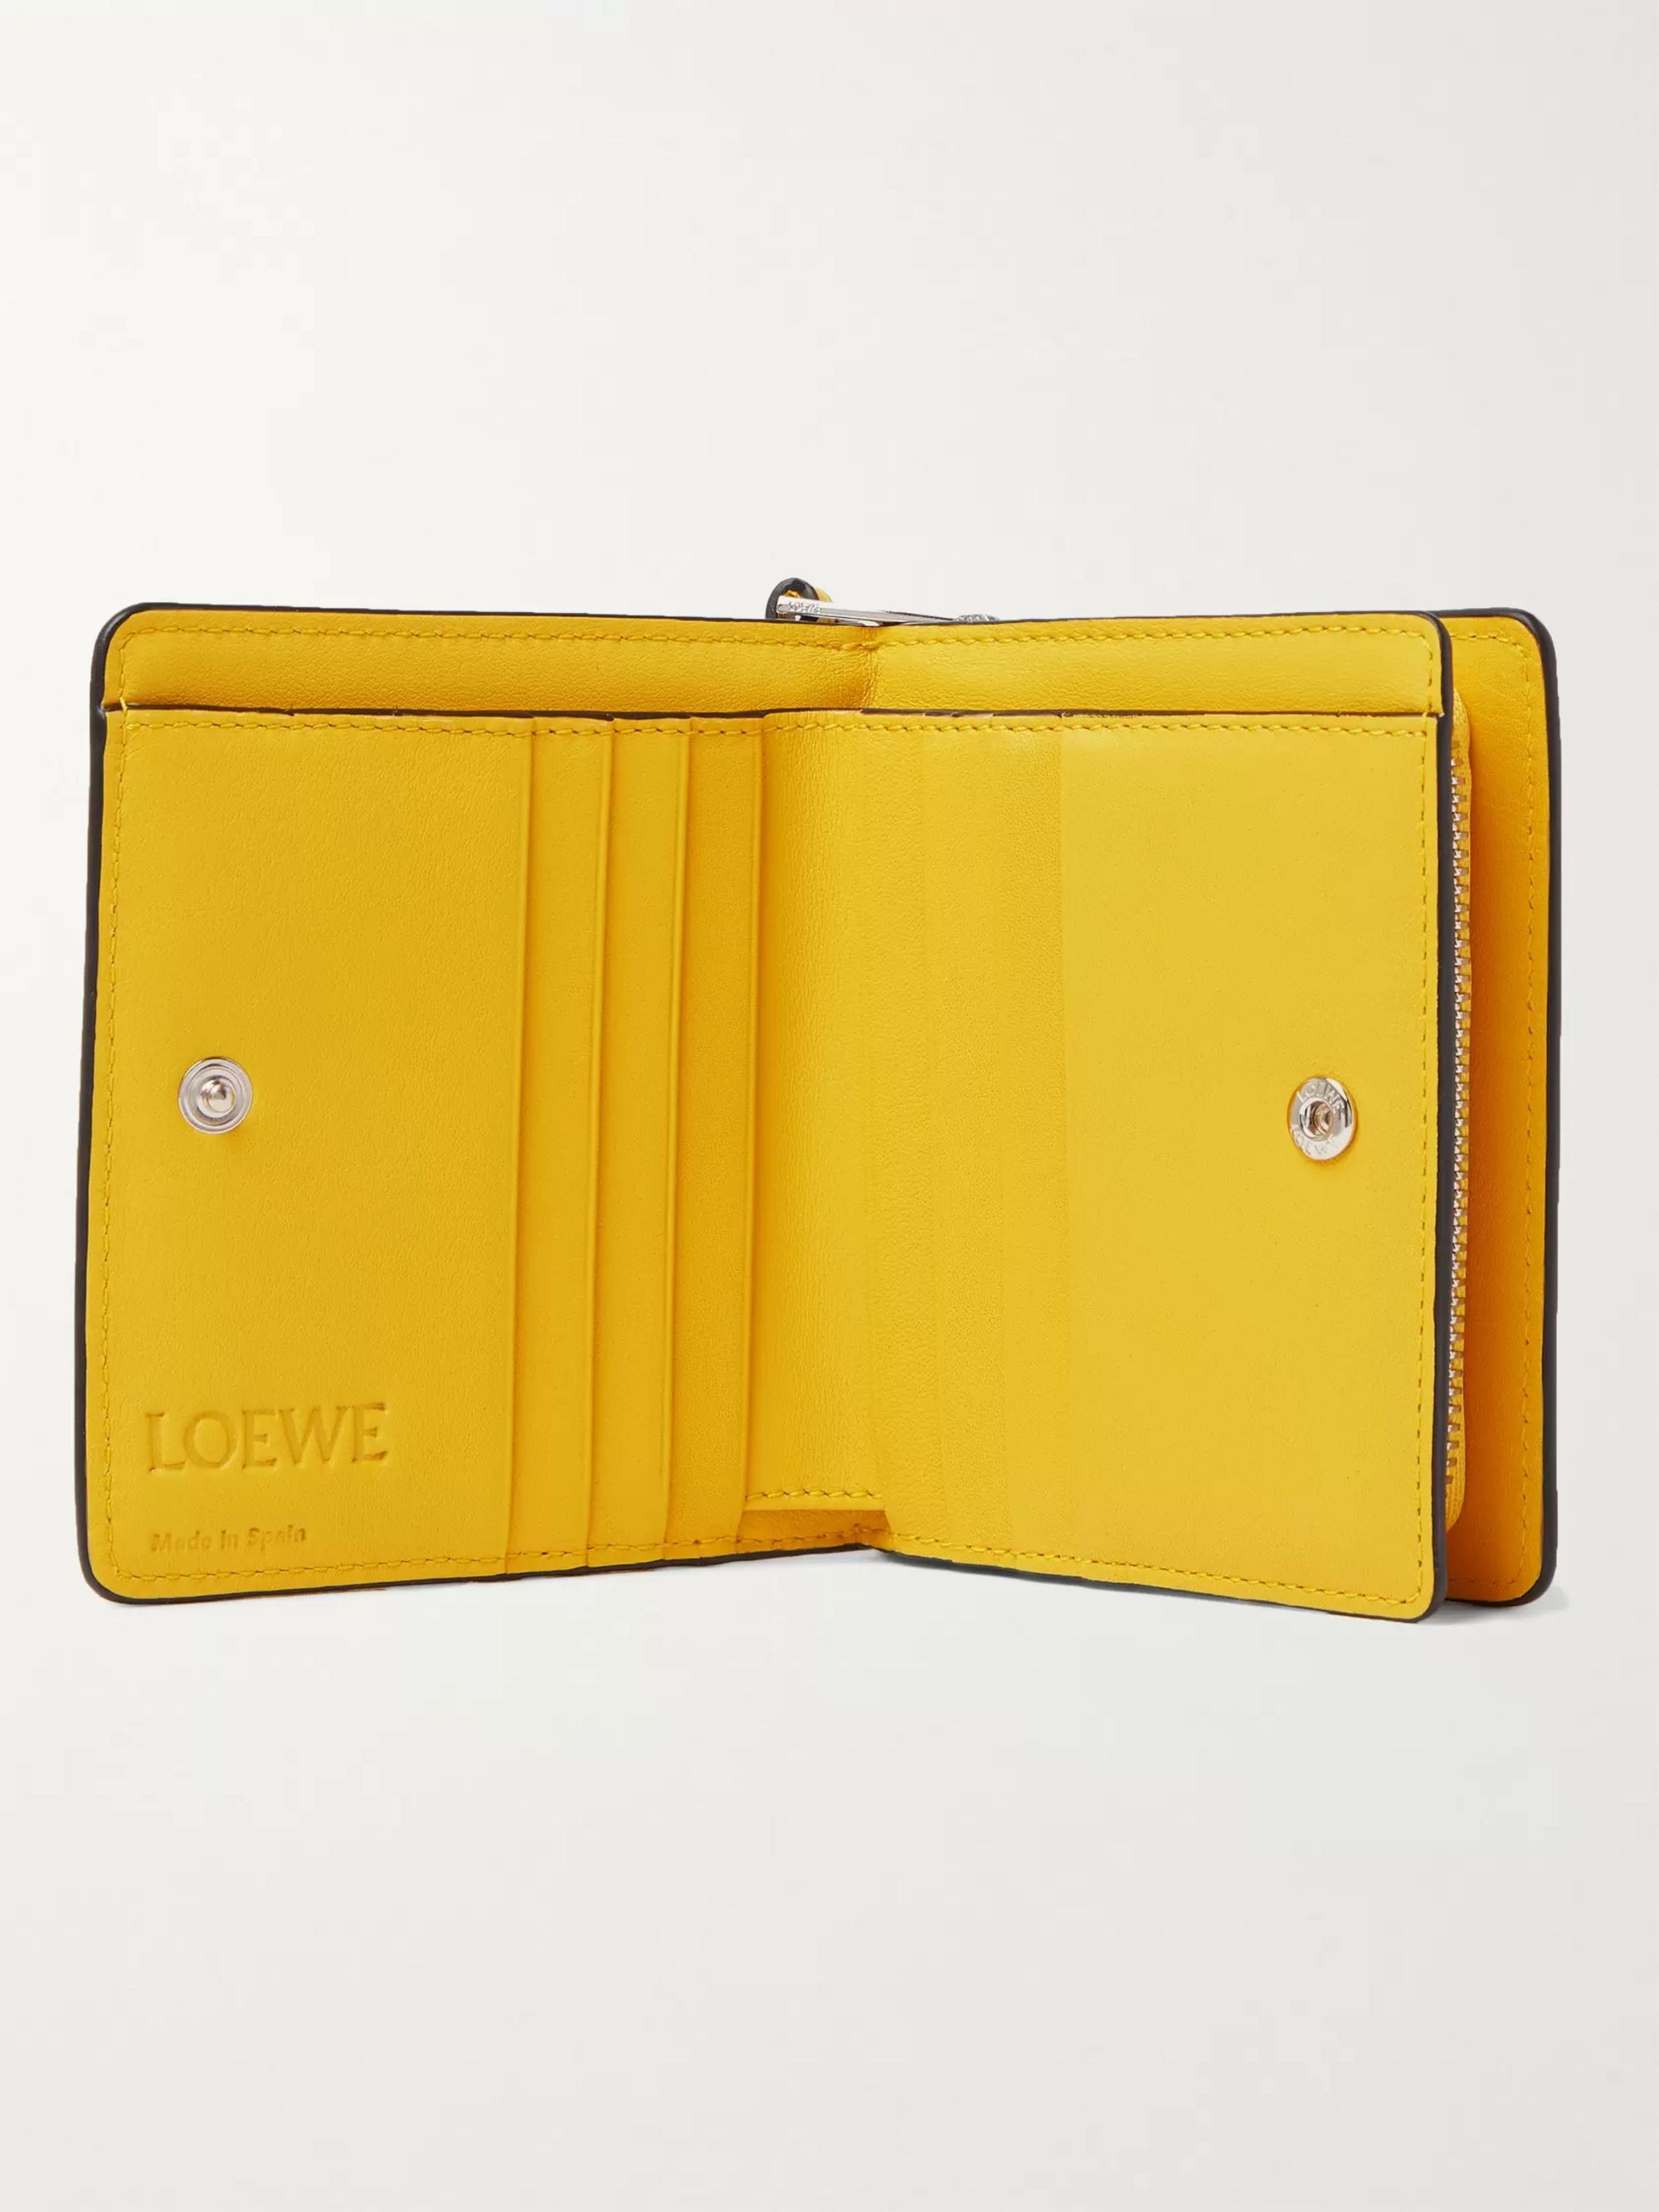 LOEWE + Ken Price L.A. Printed Leather Coin Wallet